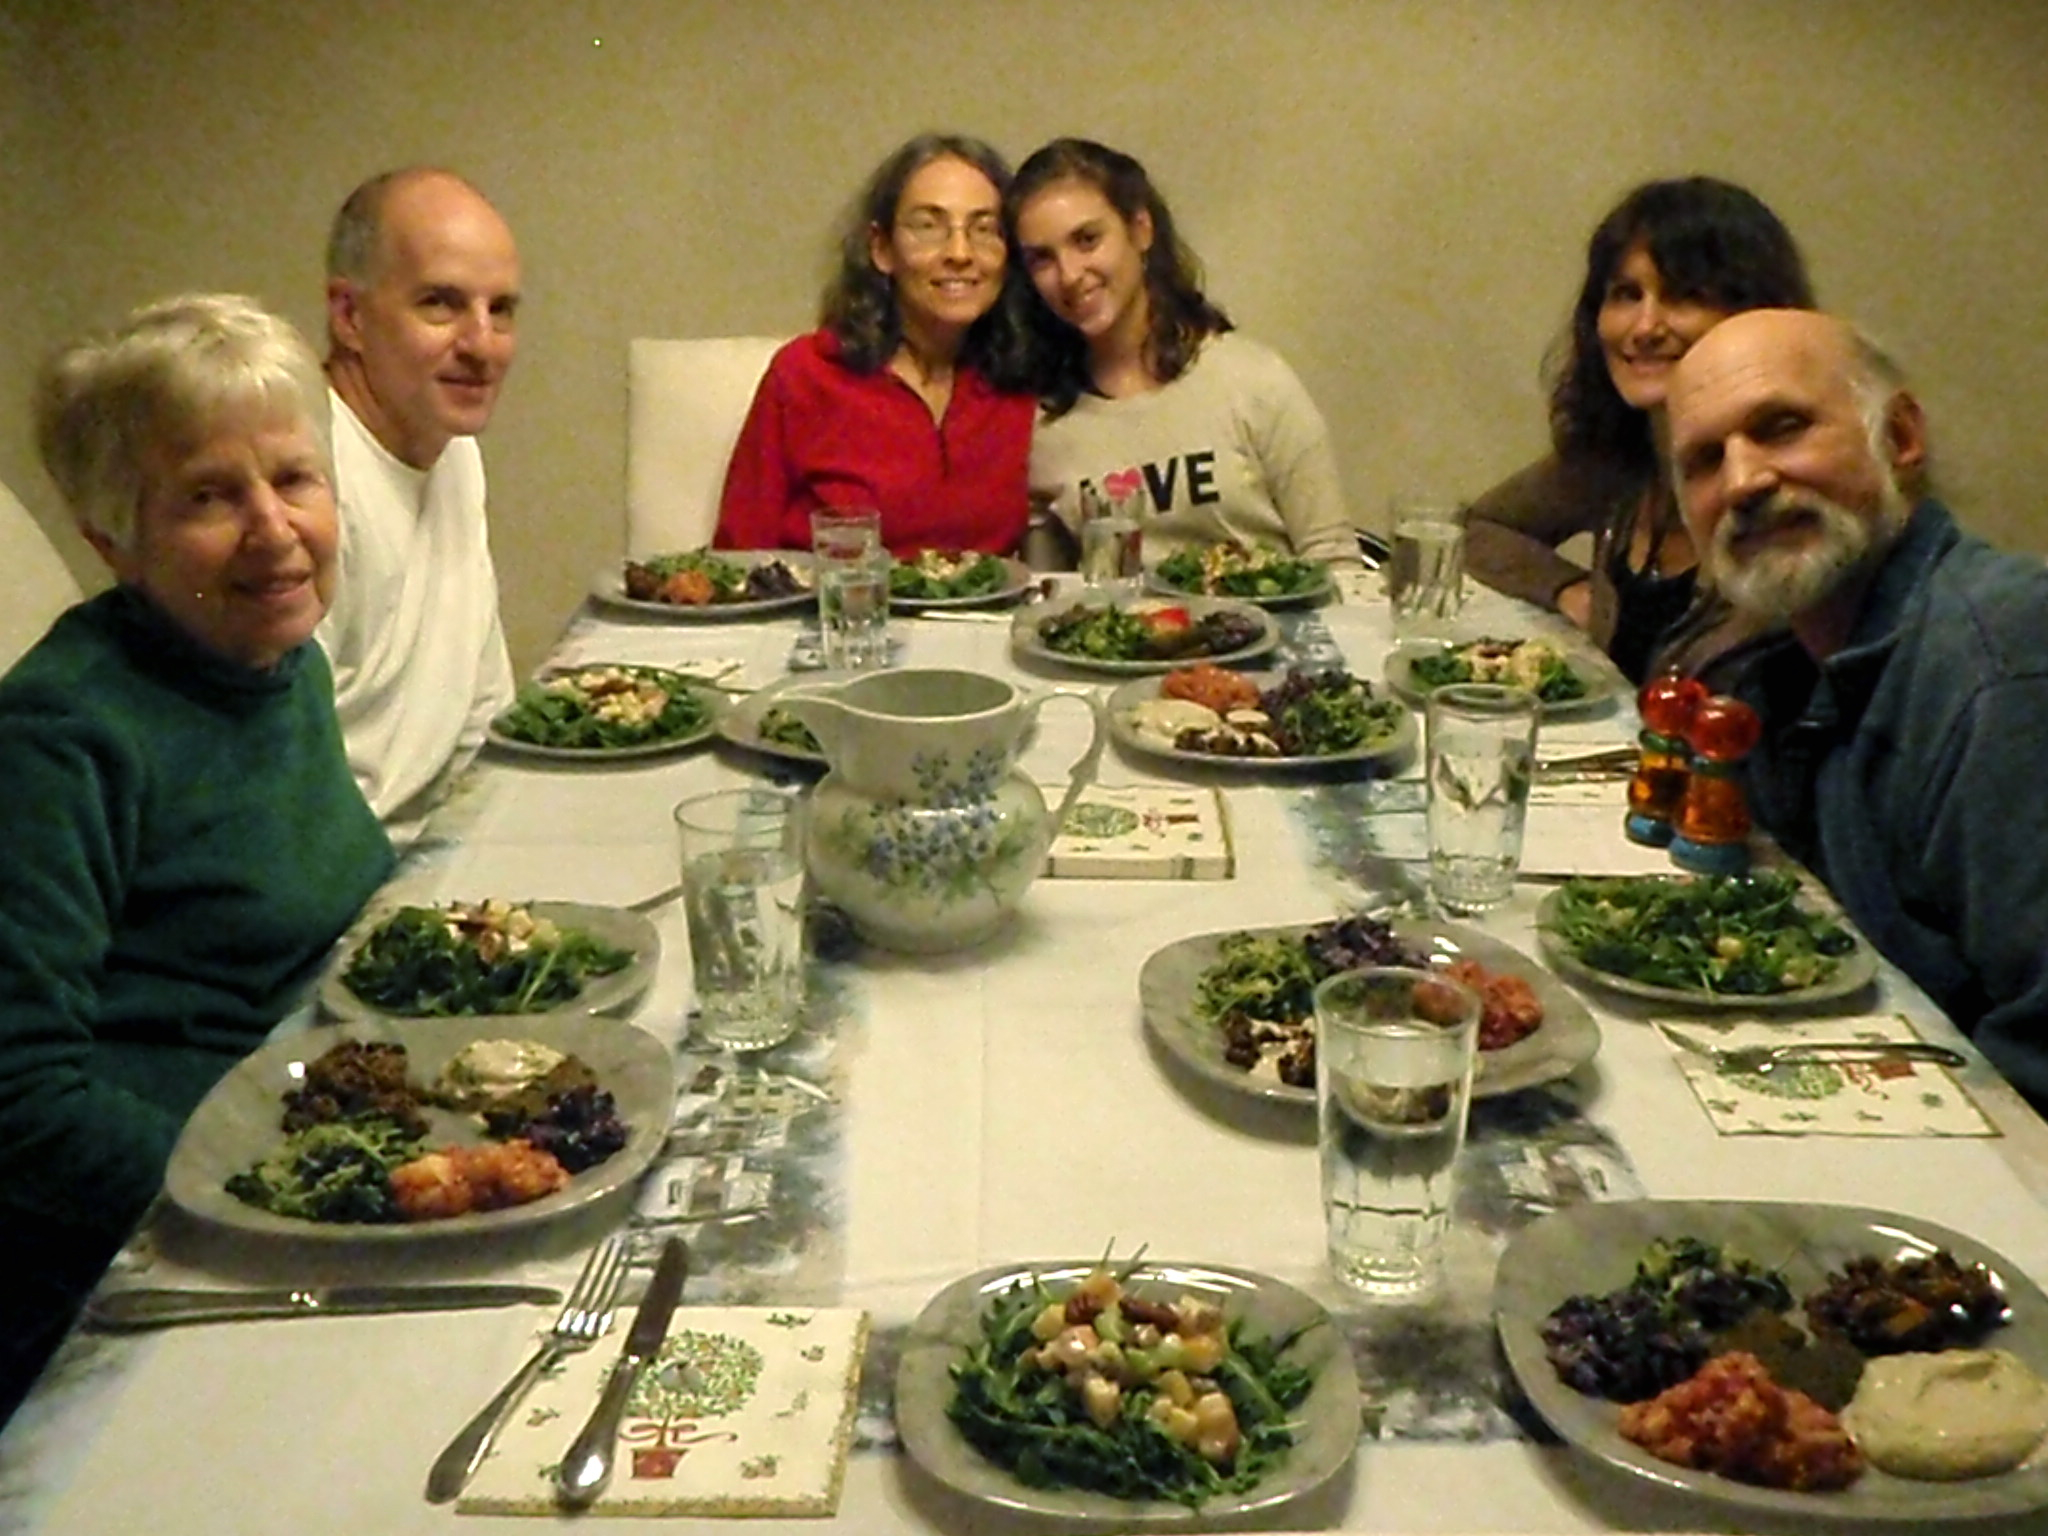 Radio Show: Healthy Holiday Q&A: Dining with Others when Your Eating Habits Have Changed